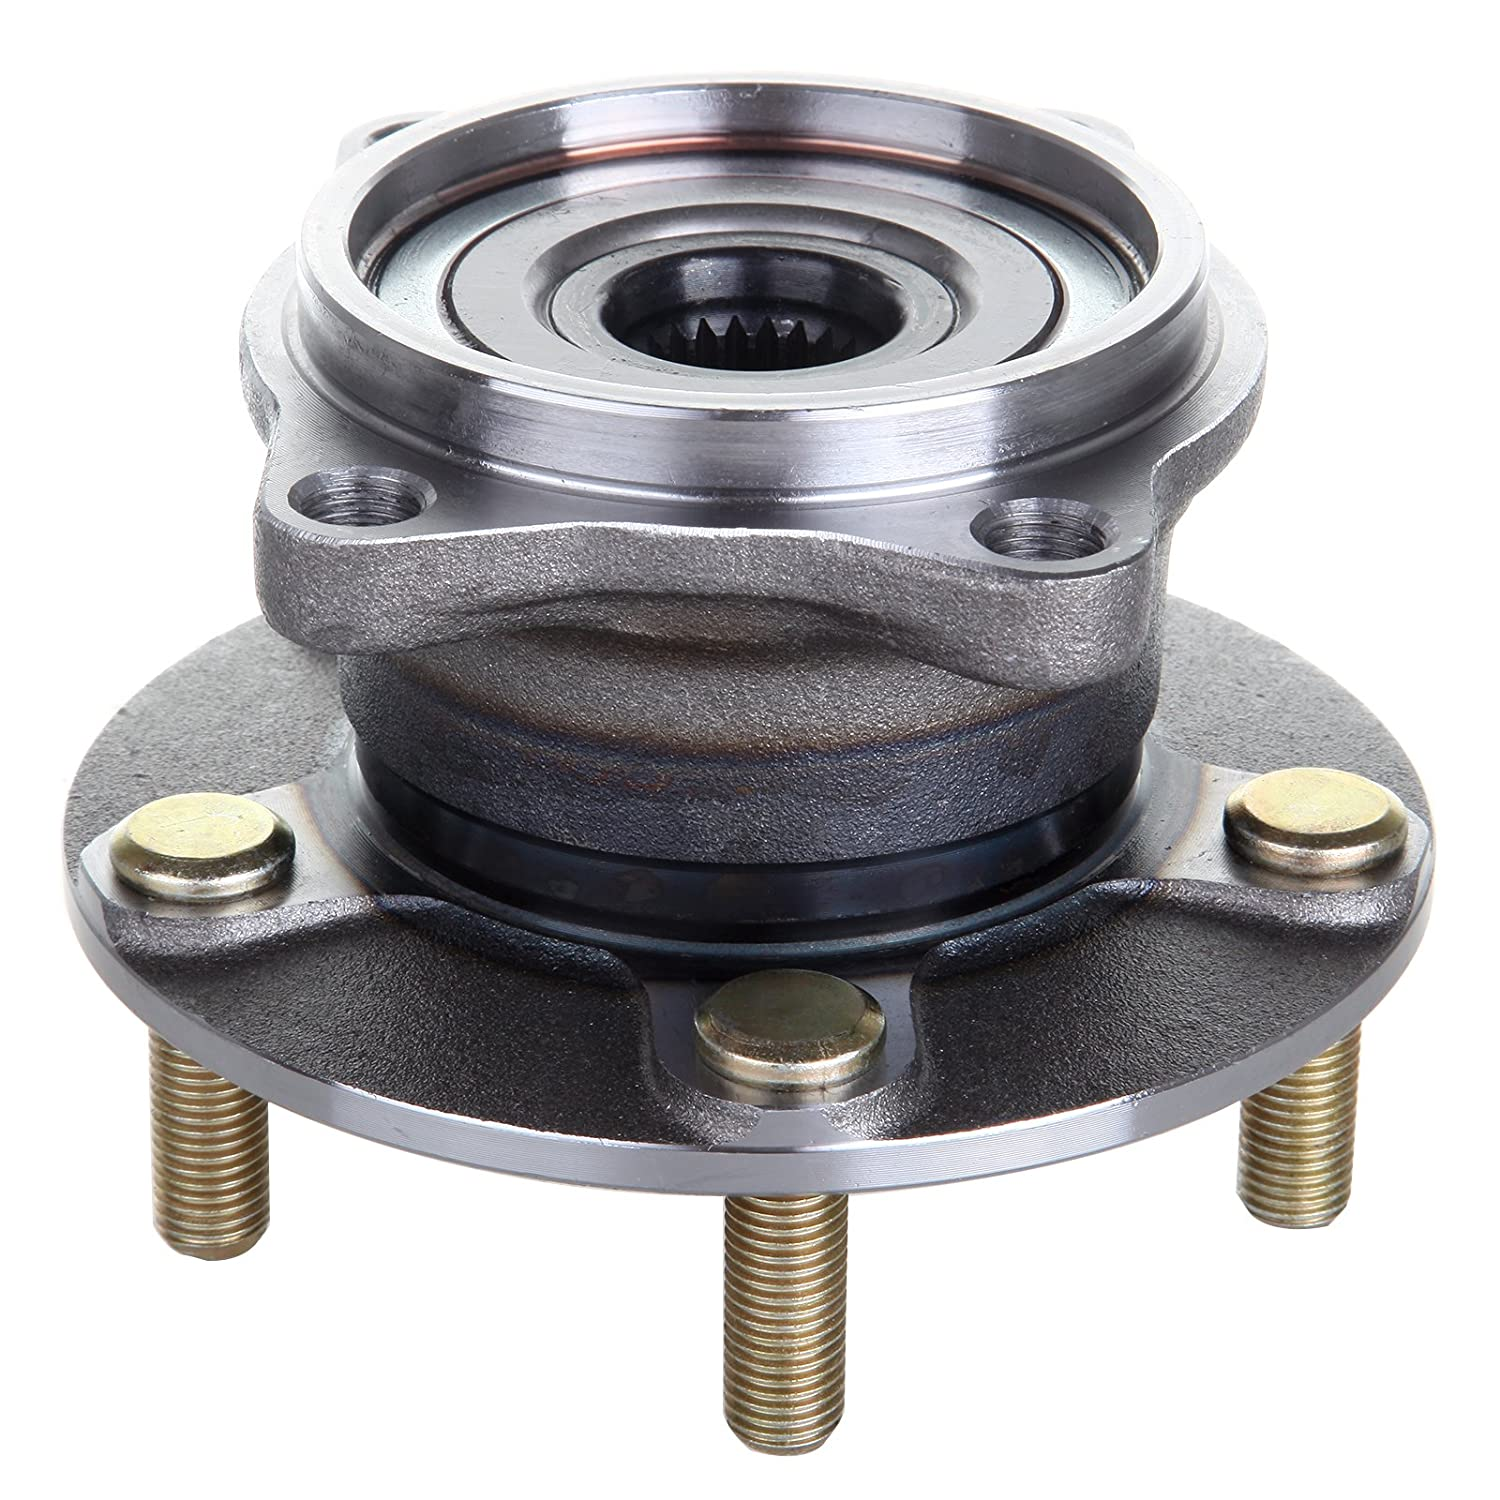 SCITOO 512291 Rear Wheel Hub Bearing Assembly fit 2004 2005 2006 2007 2008 Mitsubishi Endeavor 5 Lugs 065783-5206-1146361